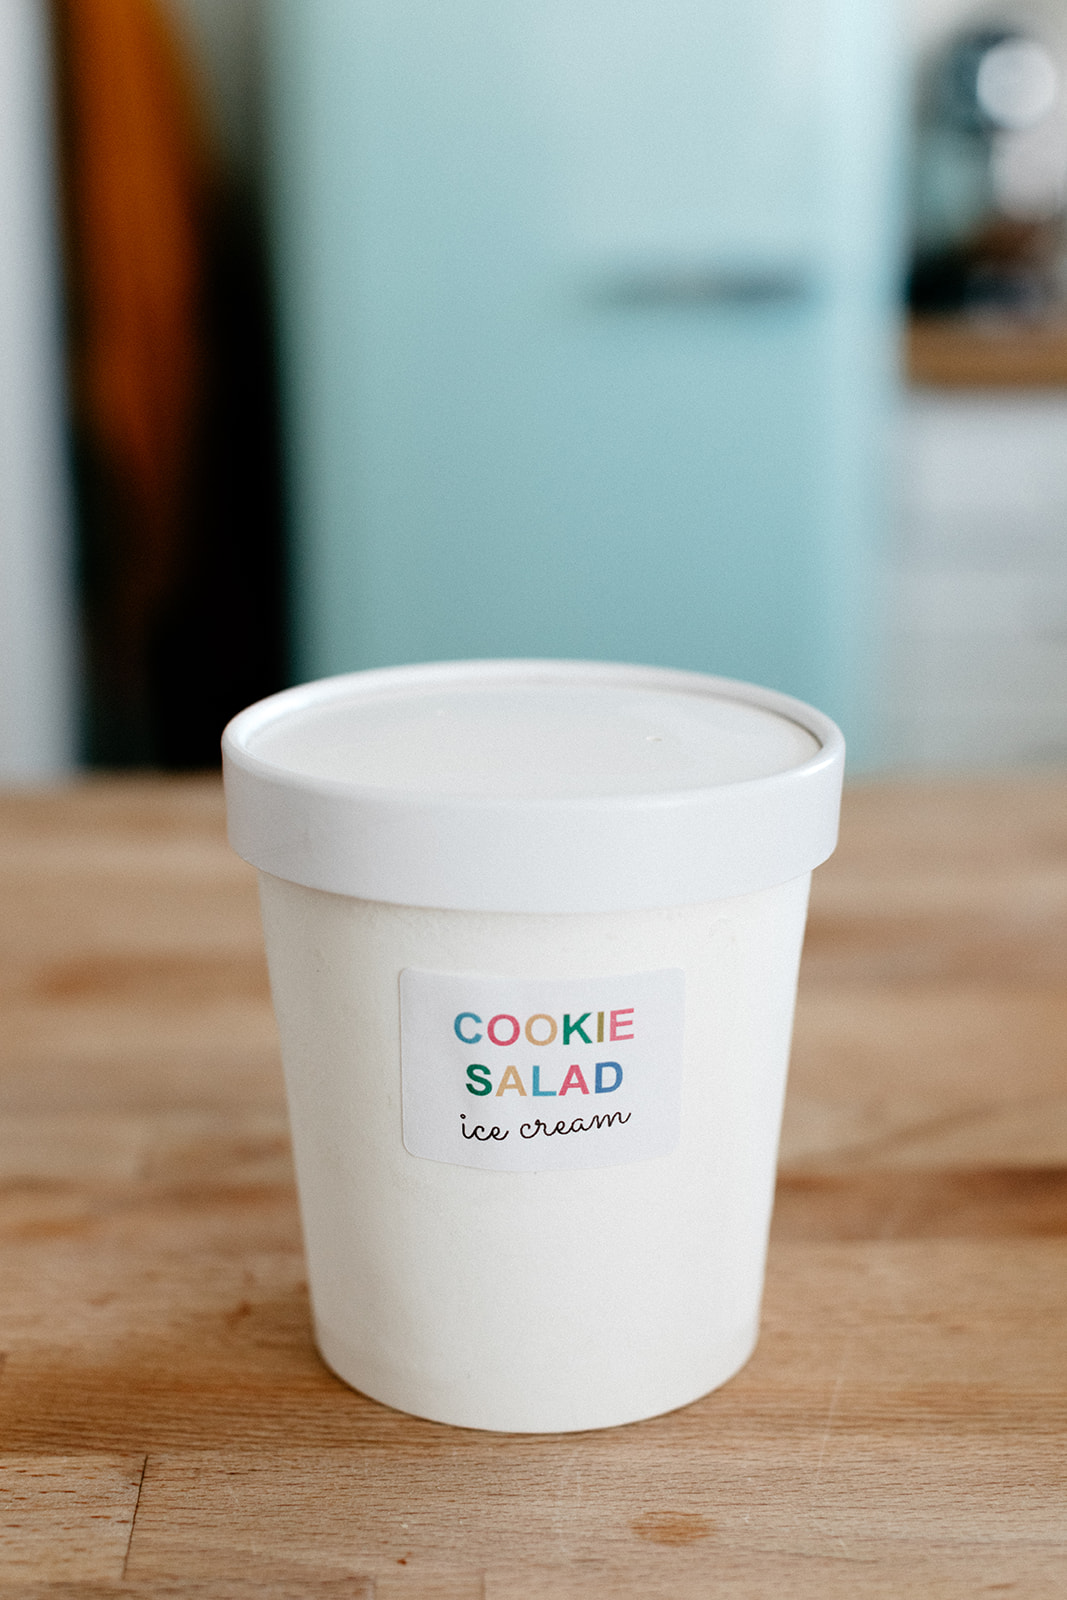 molly yeh's cookie salad ice cream